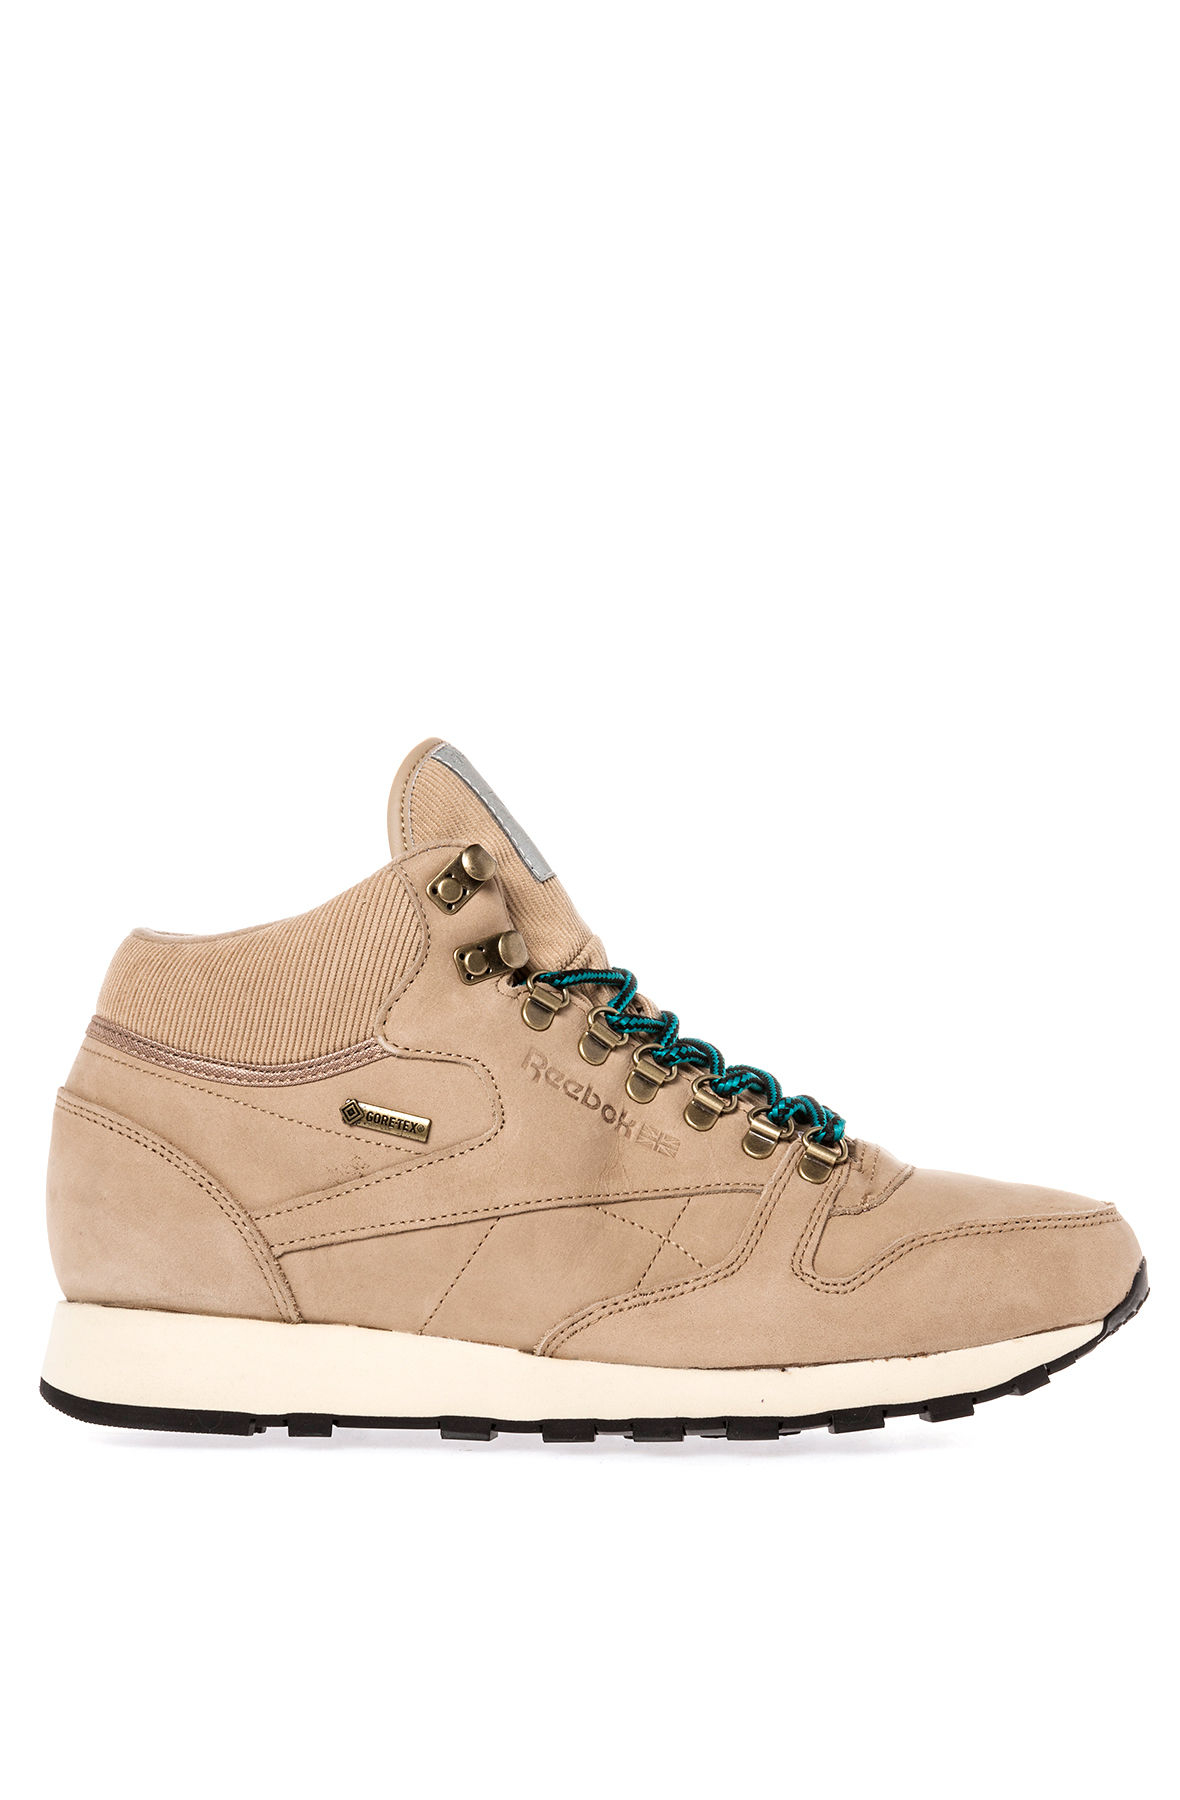 f8faf9b1c40 Lyst - Reebok The Classic Leather Mid Gore-Tex Sneaker in Brown for Men